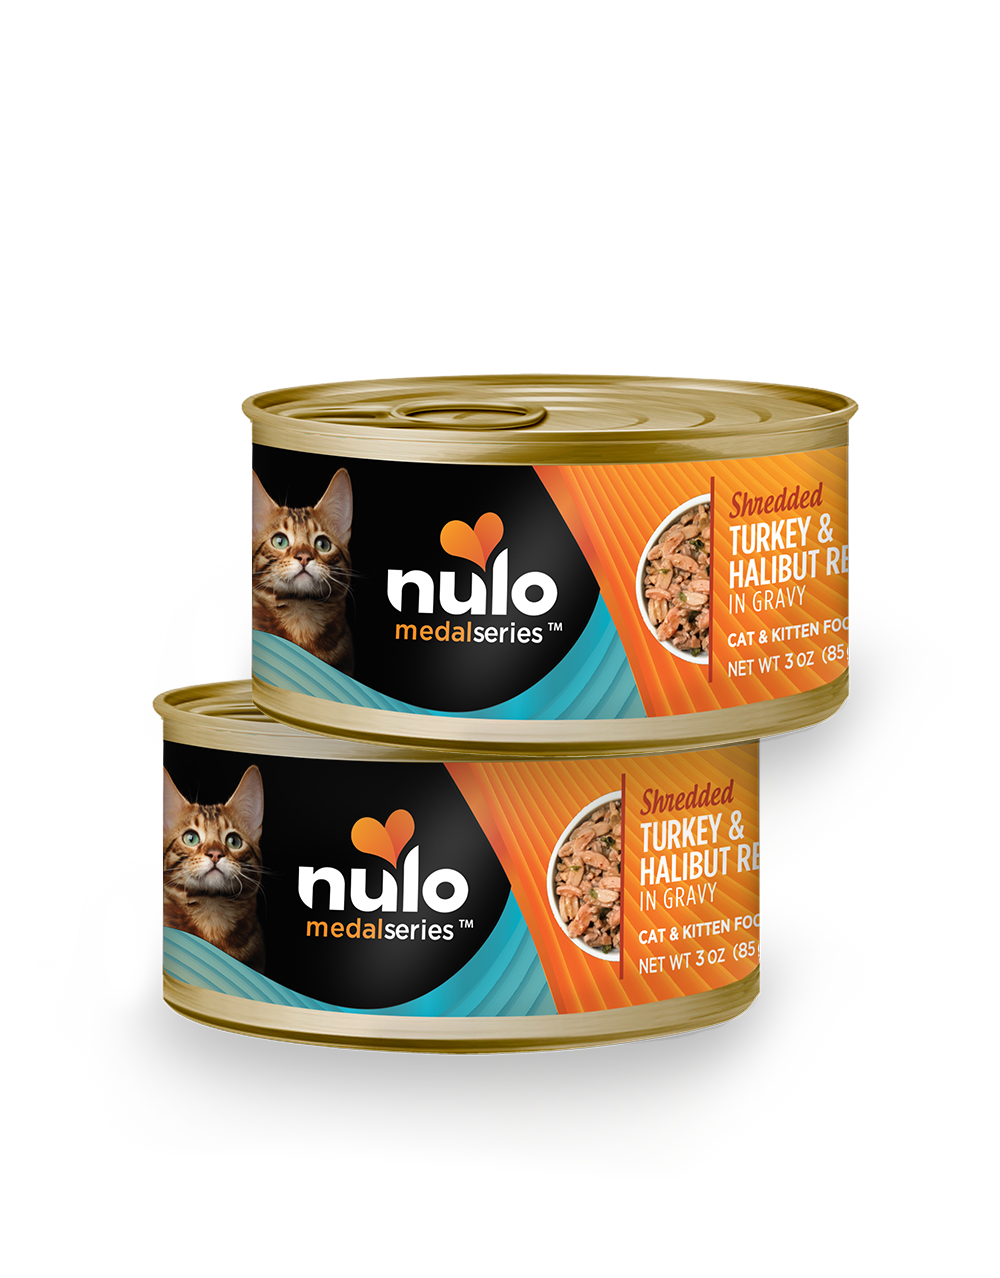 Nulo medalseries 3oz cat cans Turkey&Halibut